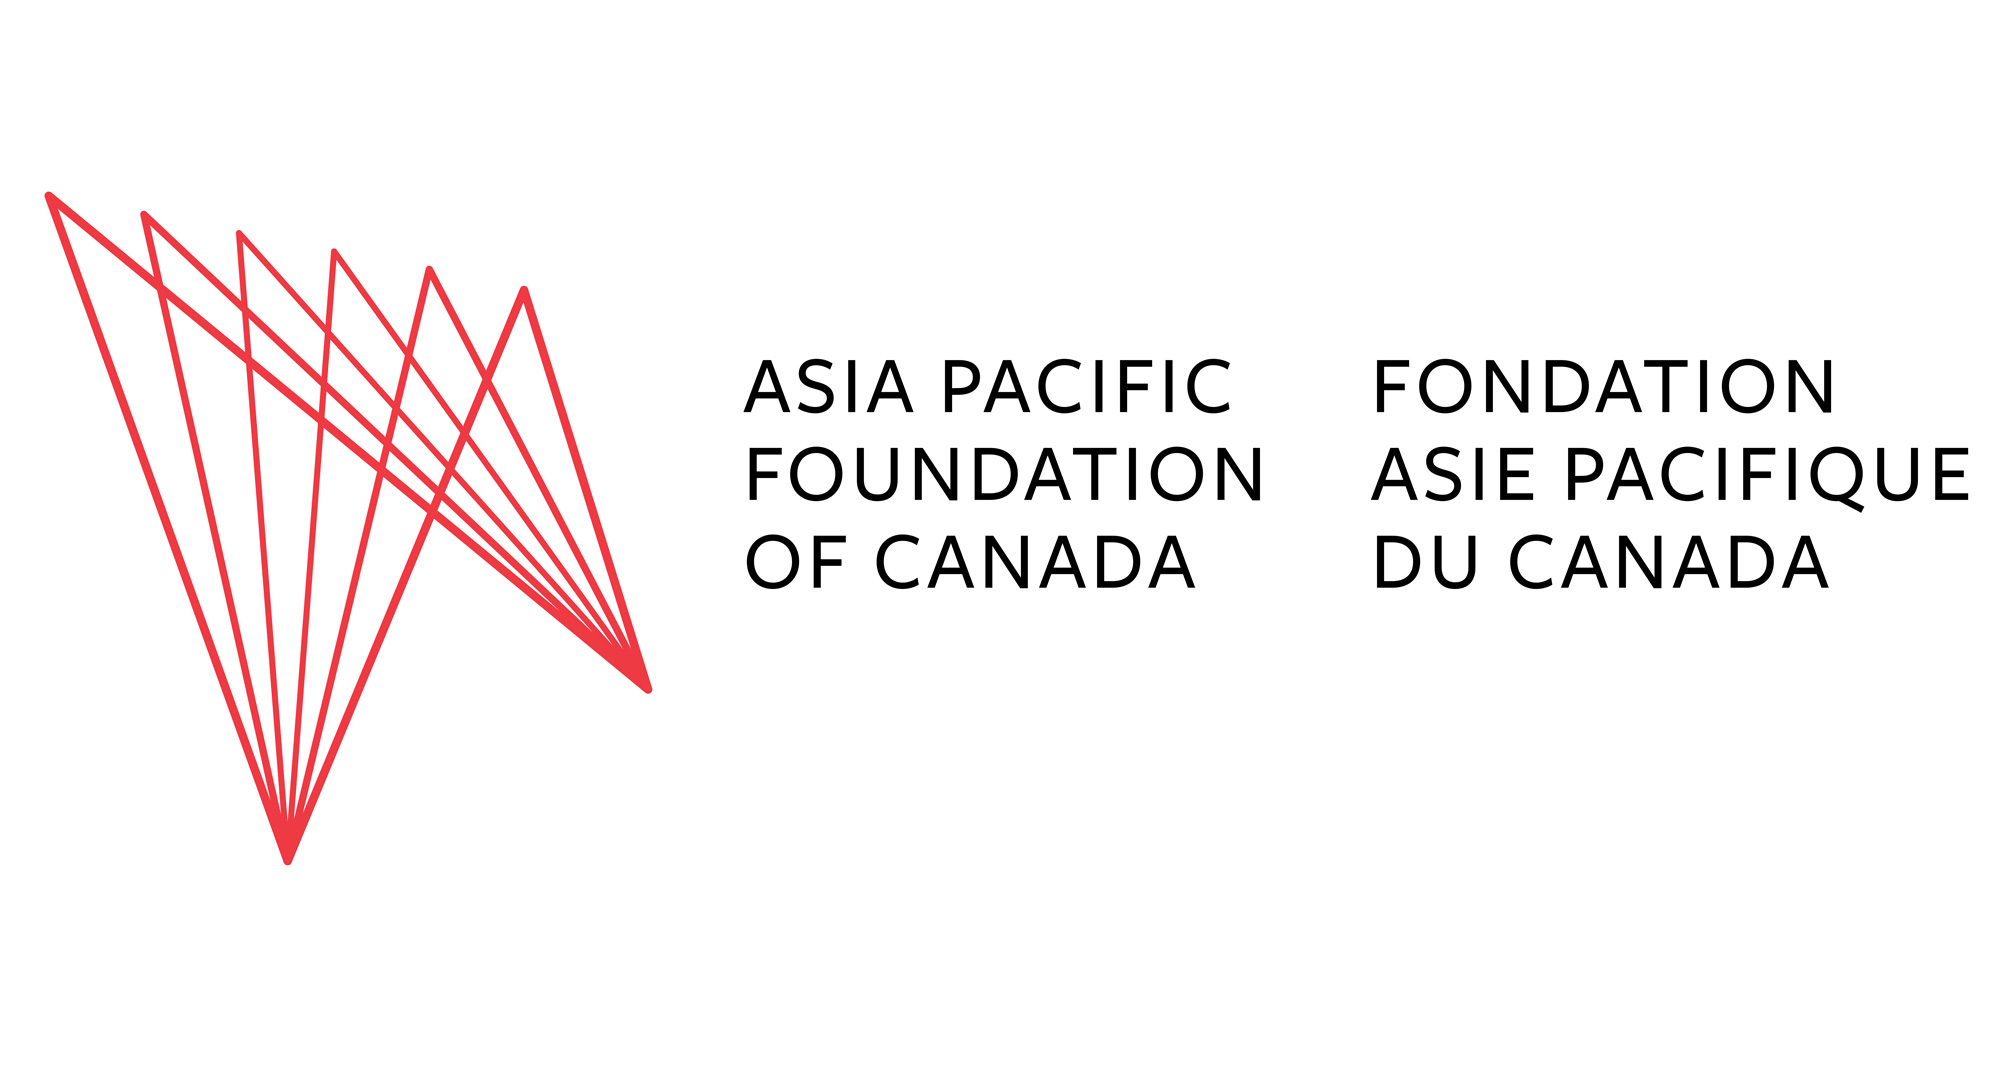 Asia Pacific Foundation of Canada Junior Research Scholarship 2020 (up to $21,000)